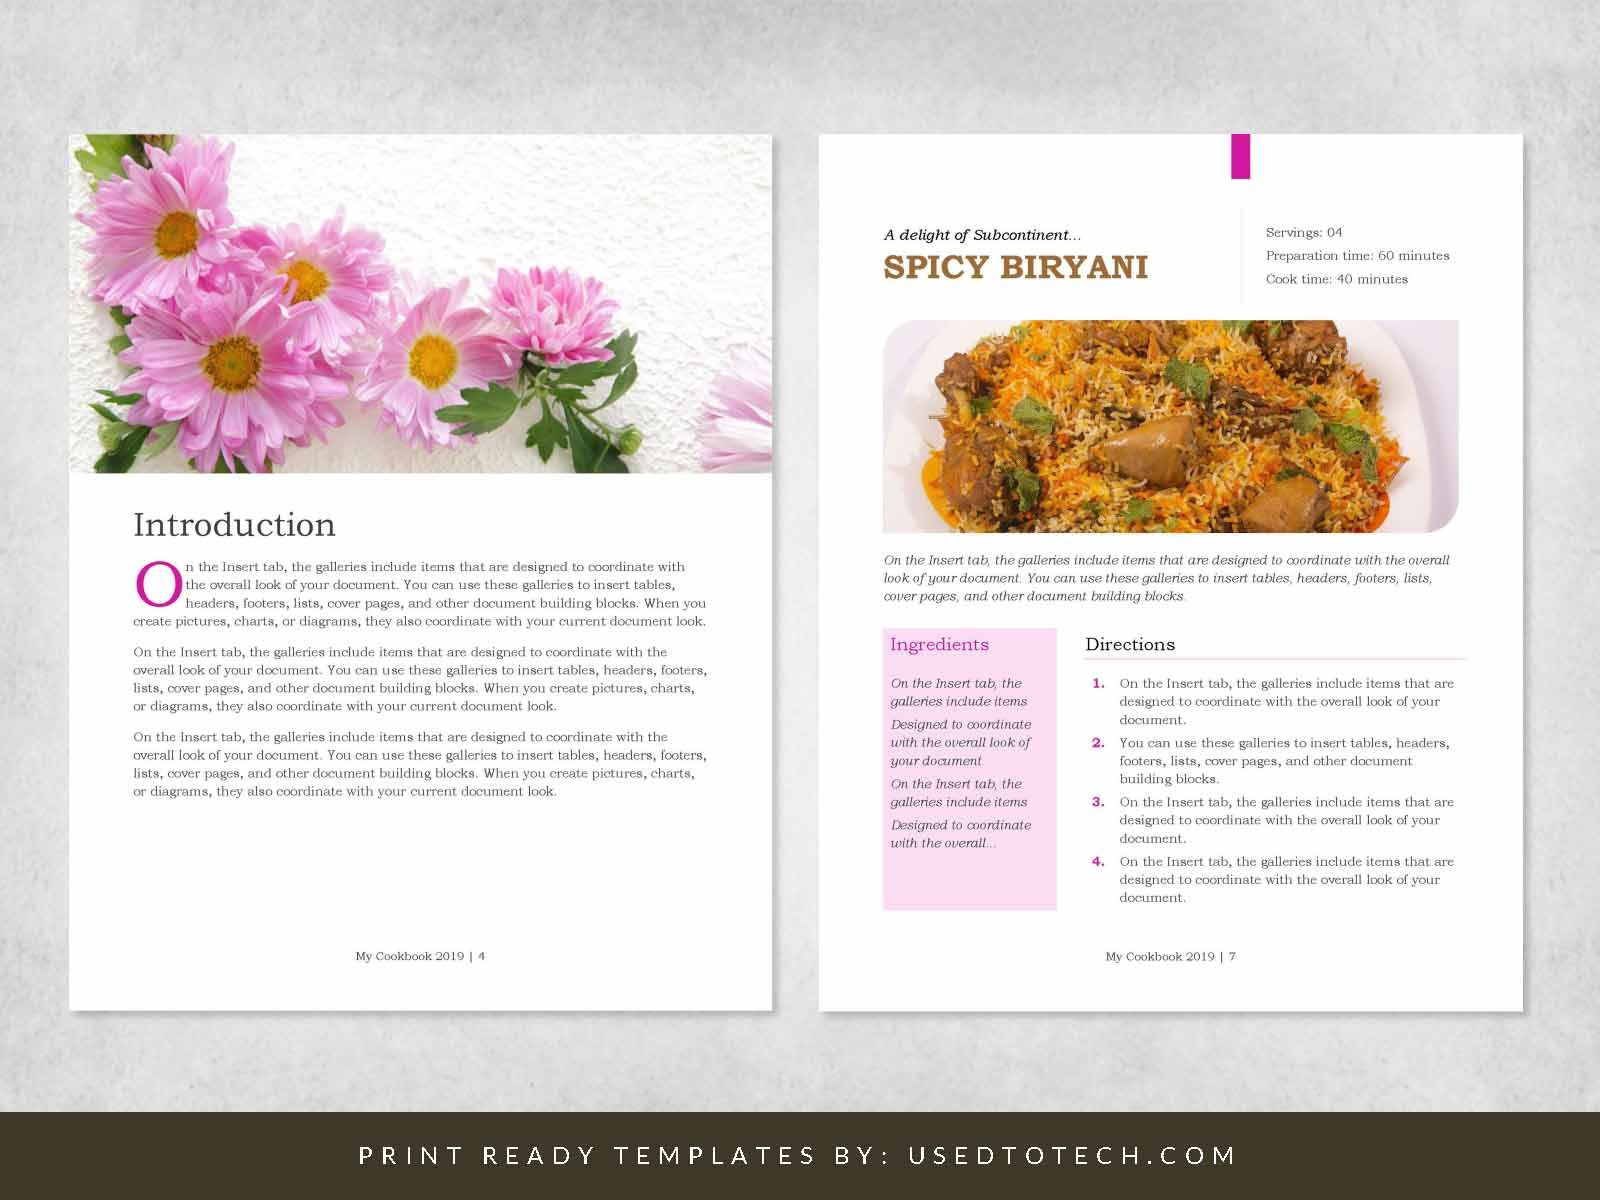 000 Stirring Make Your Own Cookbook Template Free Example  DownloadFull